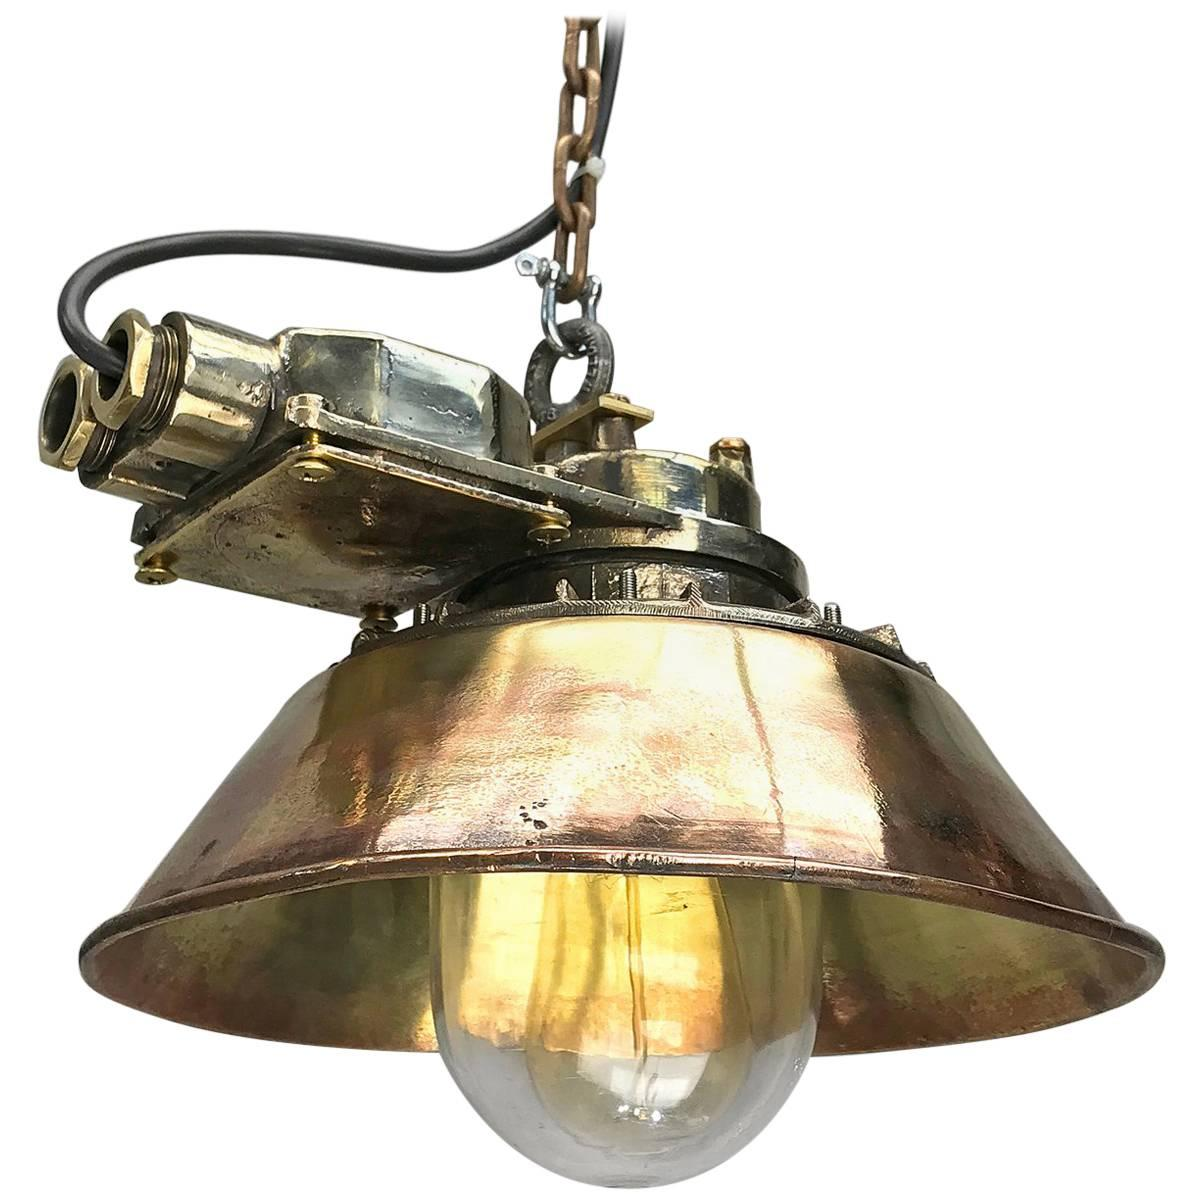 1950s Japanese Industrial Cast Brass Pendant Light Conical Shade & Acrylic Dome